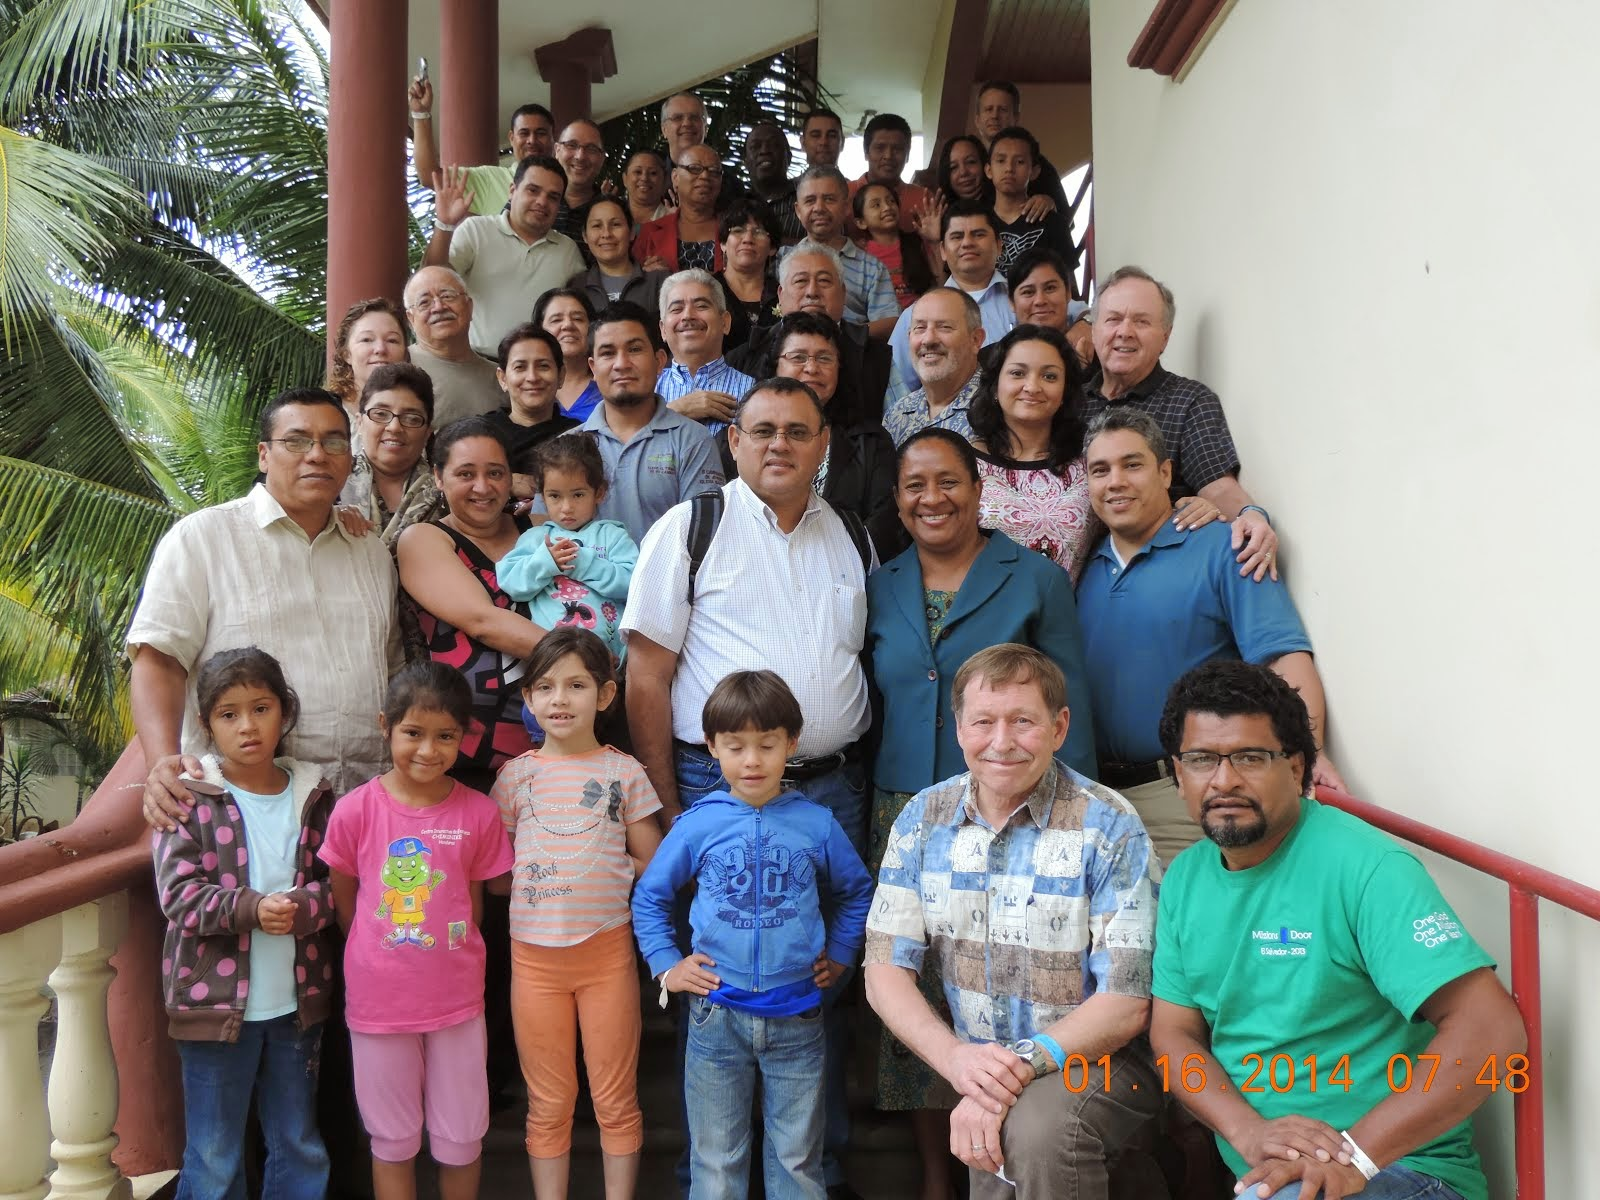 December 2013 Central America Conference